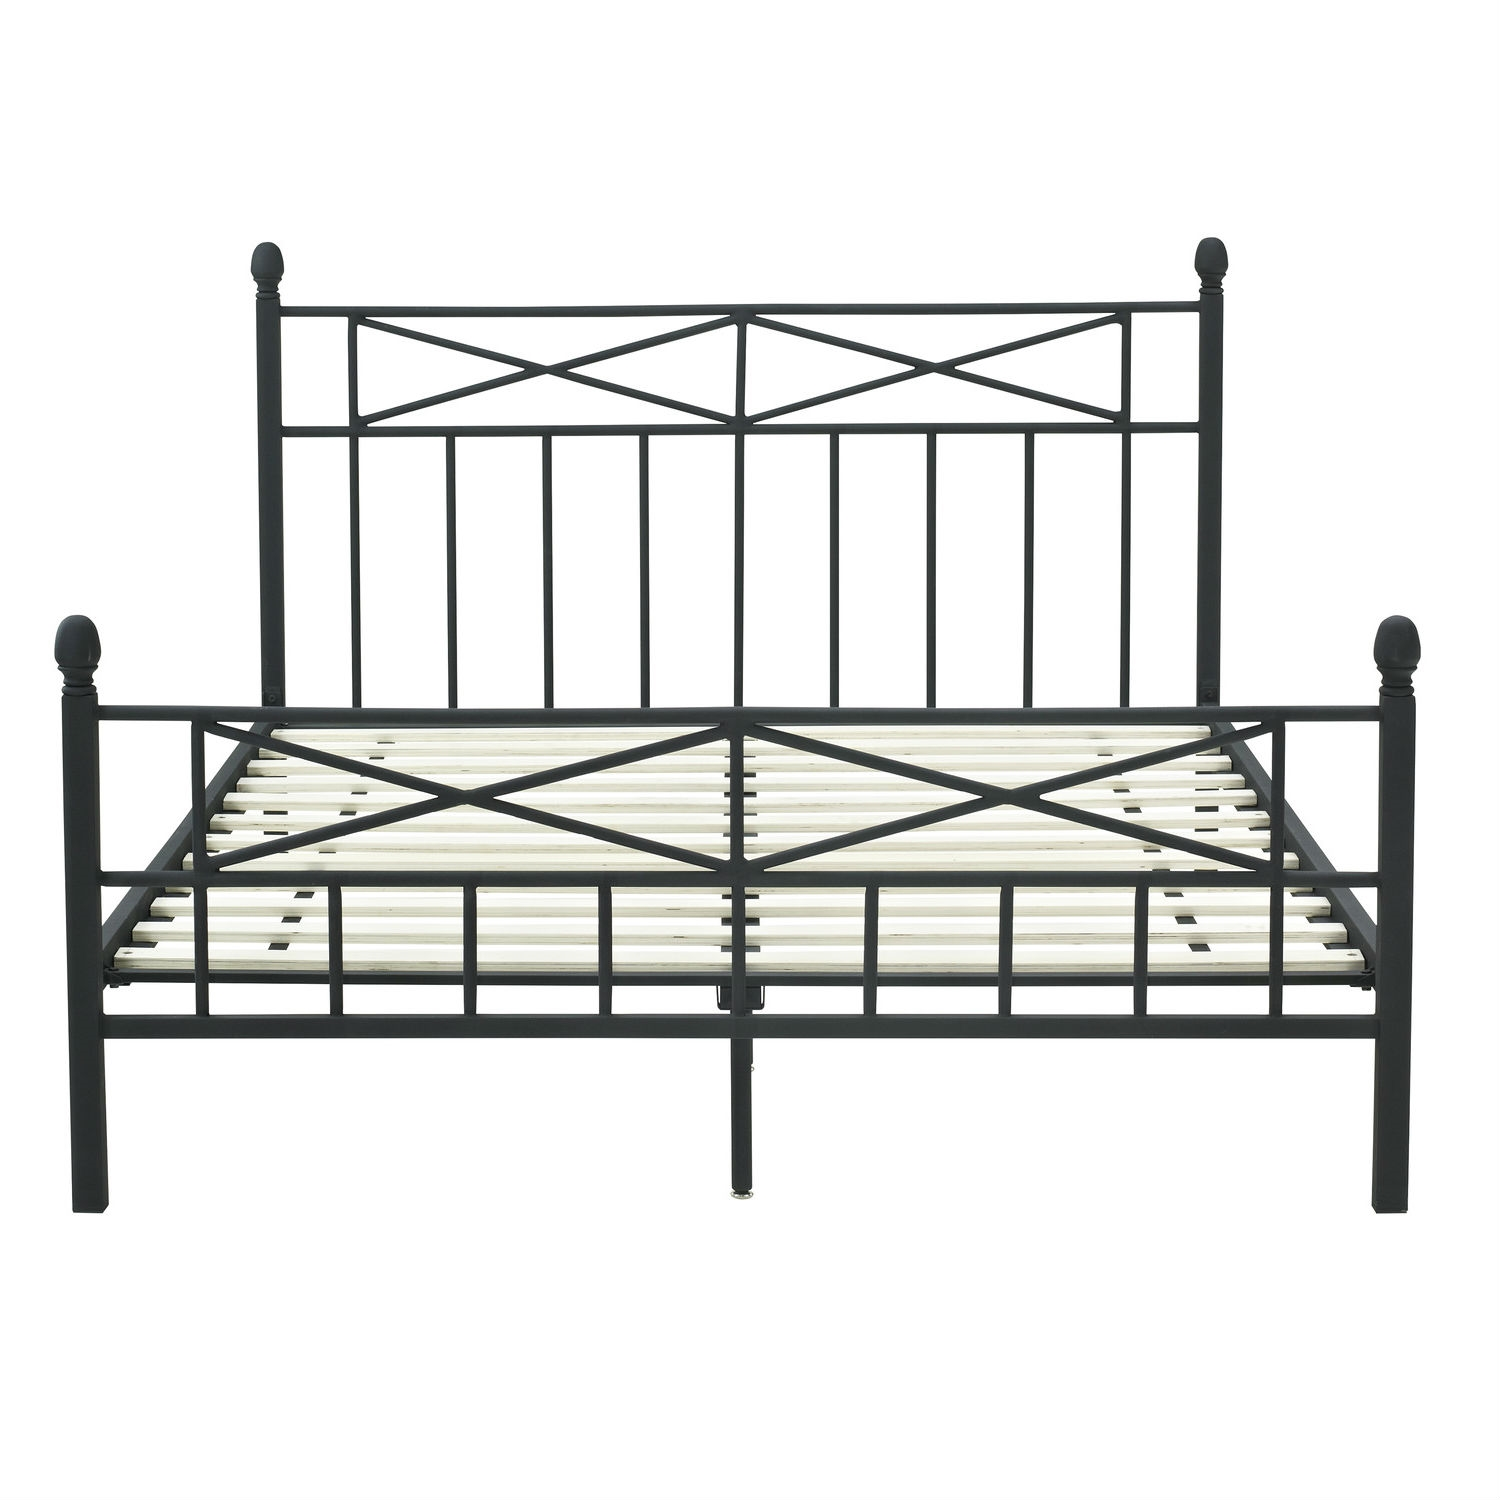 retail price 34900 - Bed Frame For Headboard And Footboard